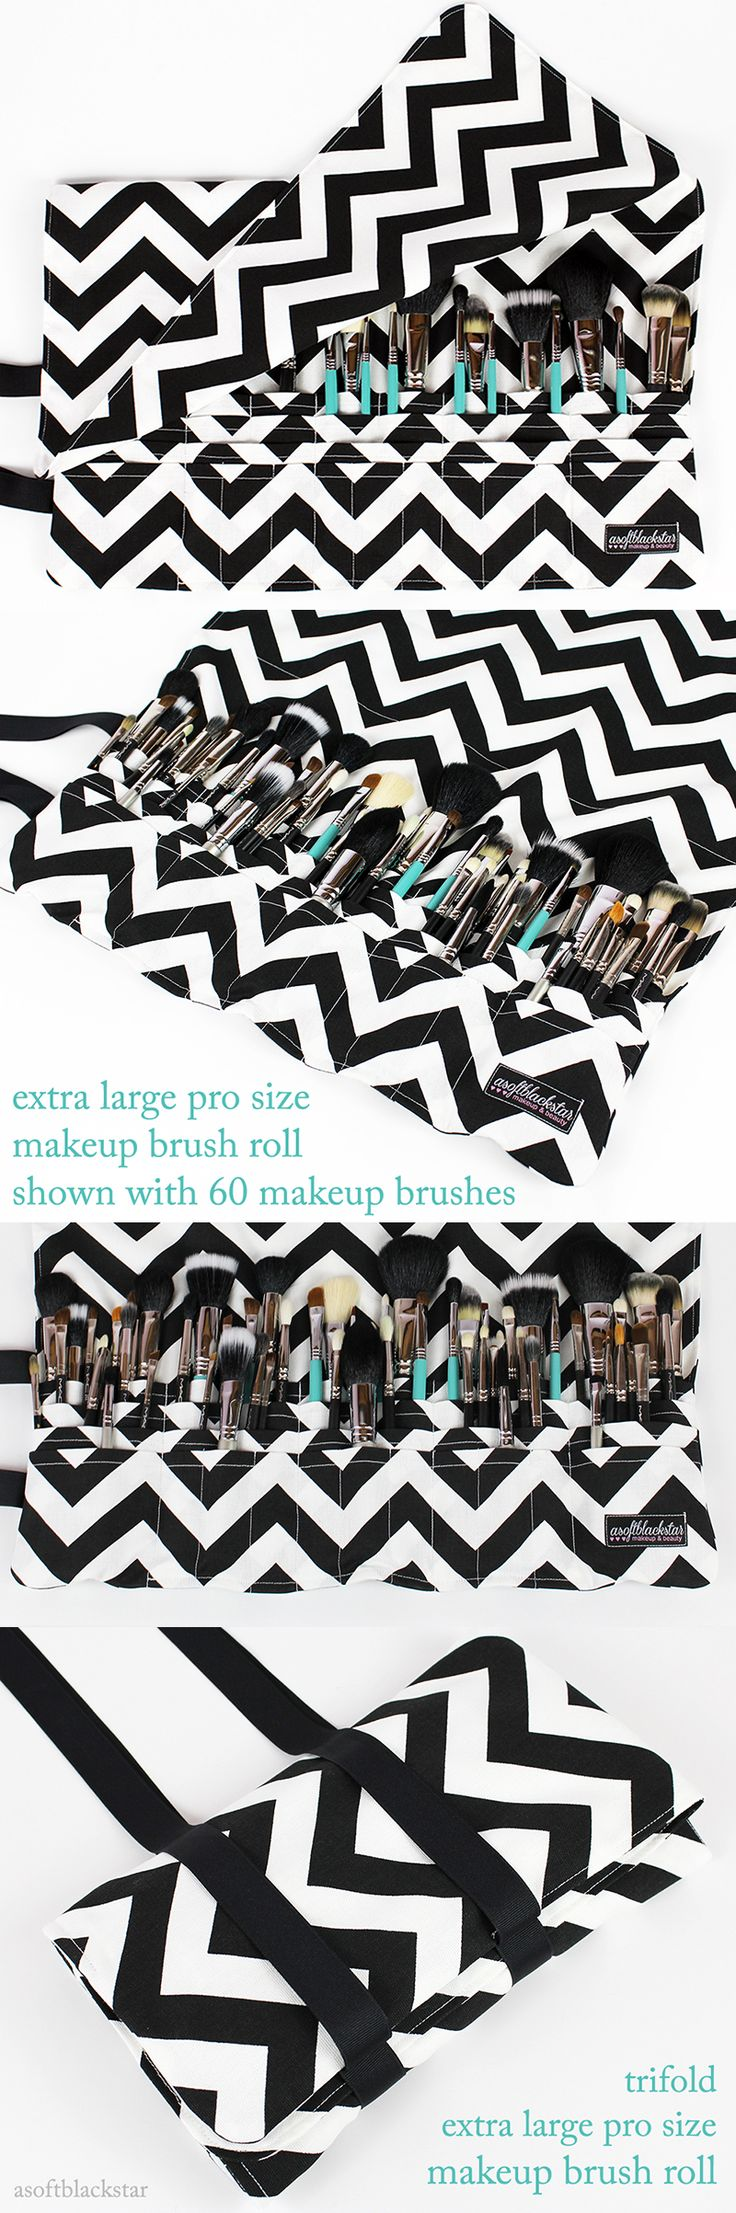 CUSTOM makeup brush roll Extra Large Pro Size - chevron print